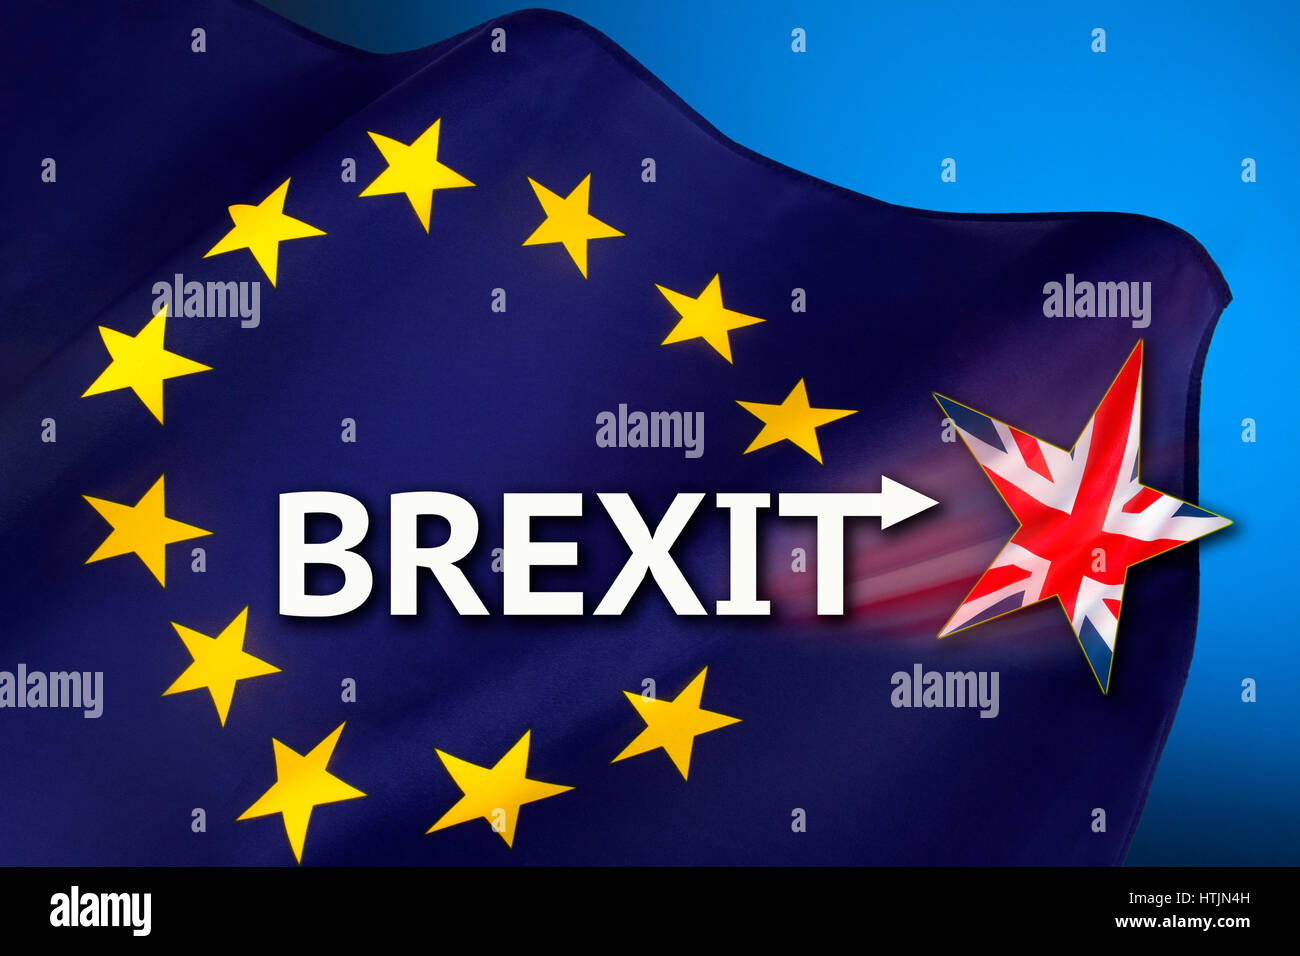 BREXIT - British withdrawal from the European Union. - Stock Image